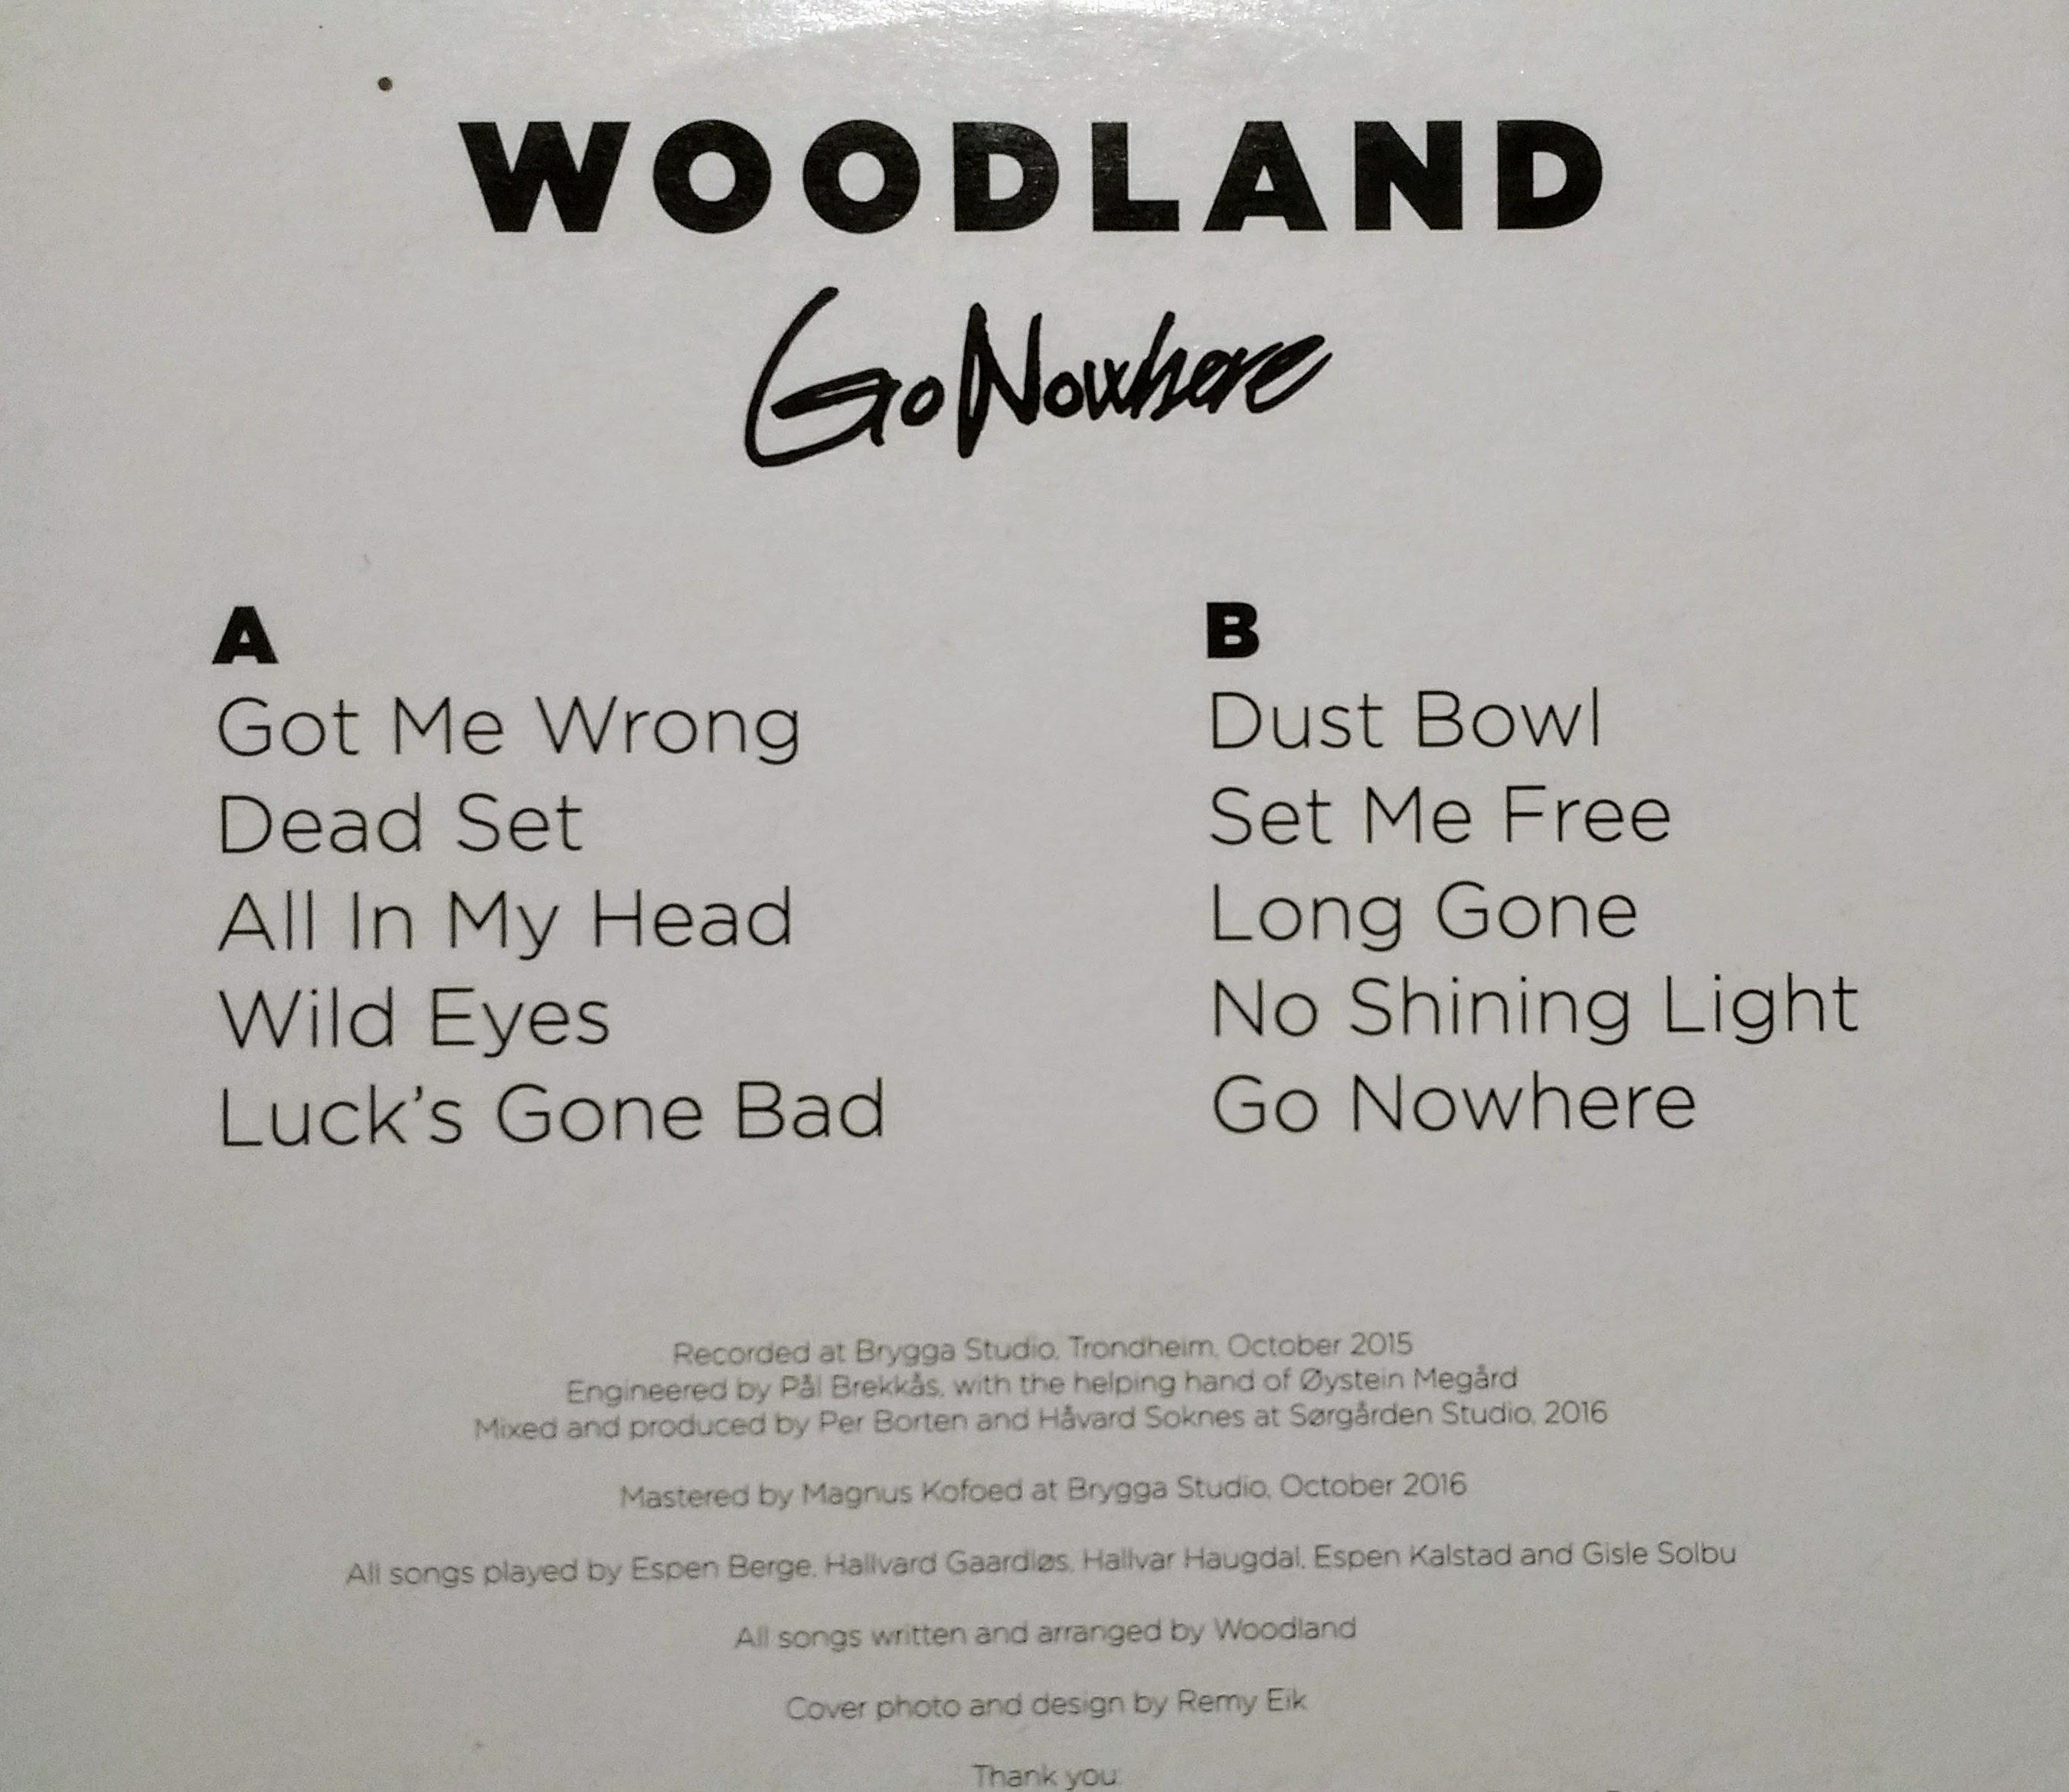 Woodland Go Nowhere B